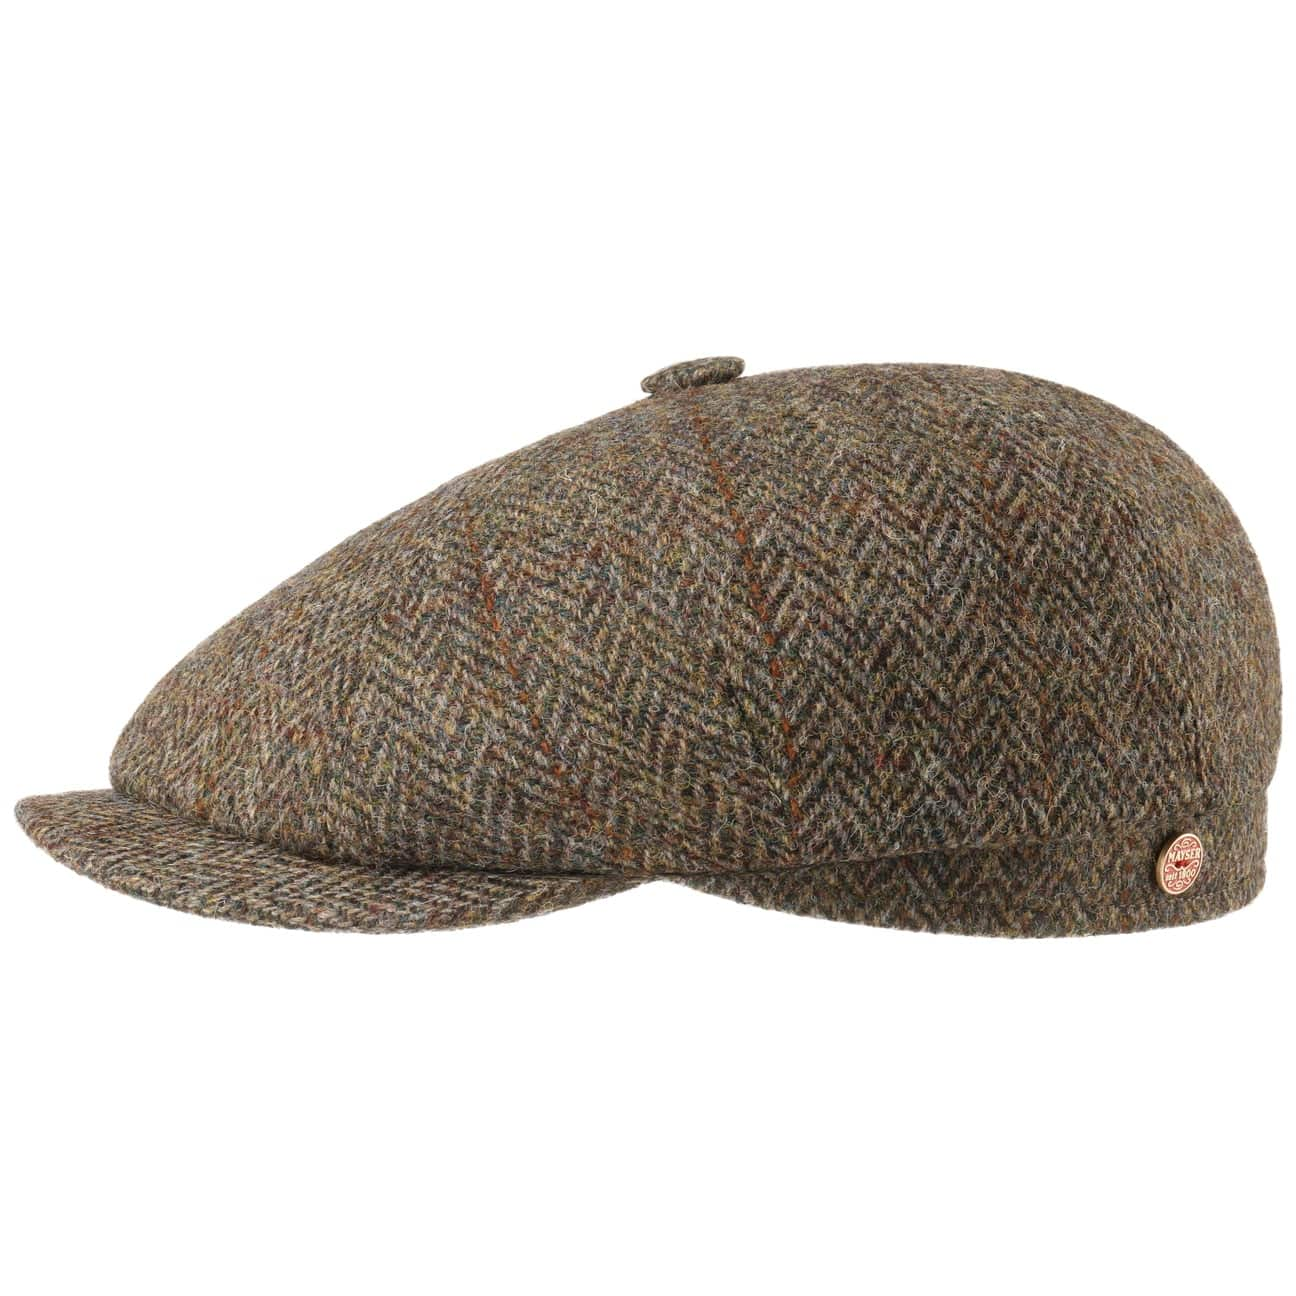 Casquette Plate Seven Big Harris Tweed by Mayser  casquette pour l`hiver